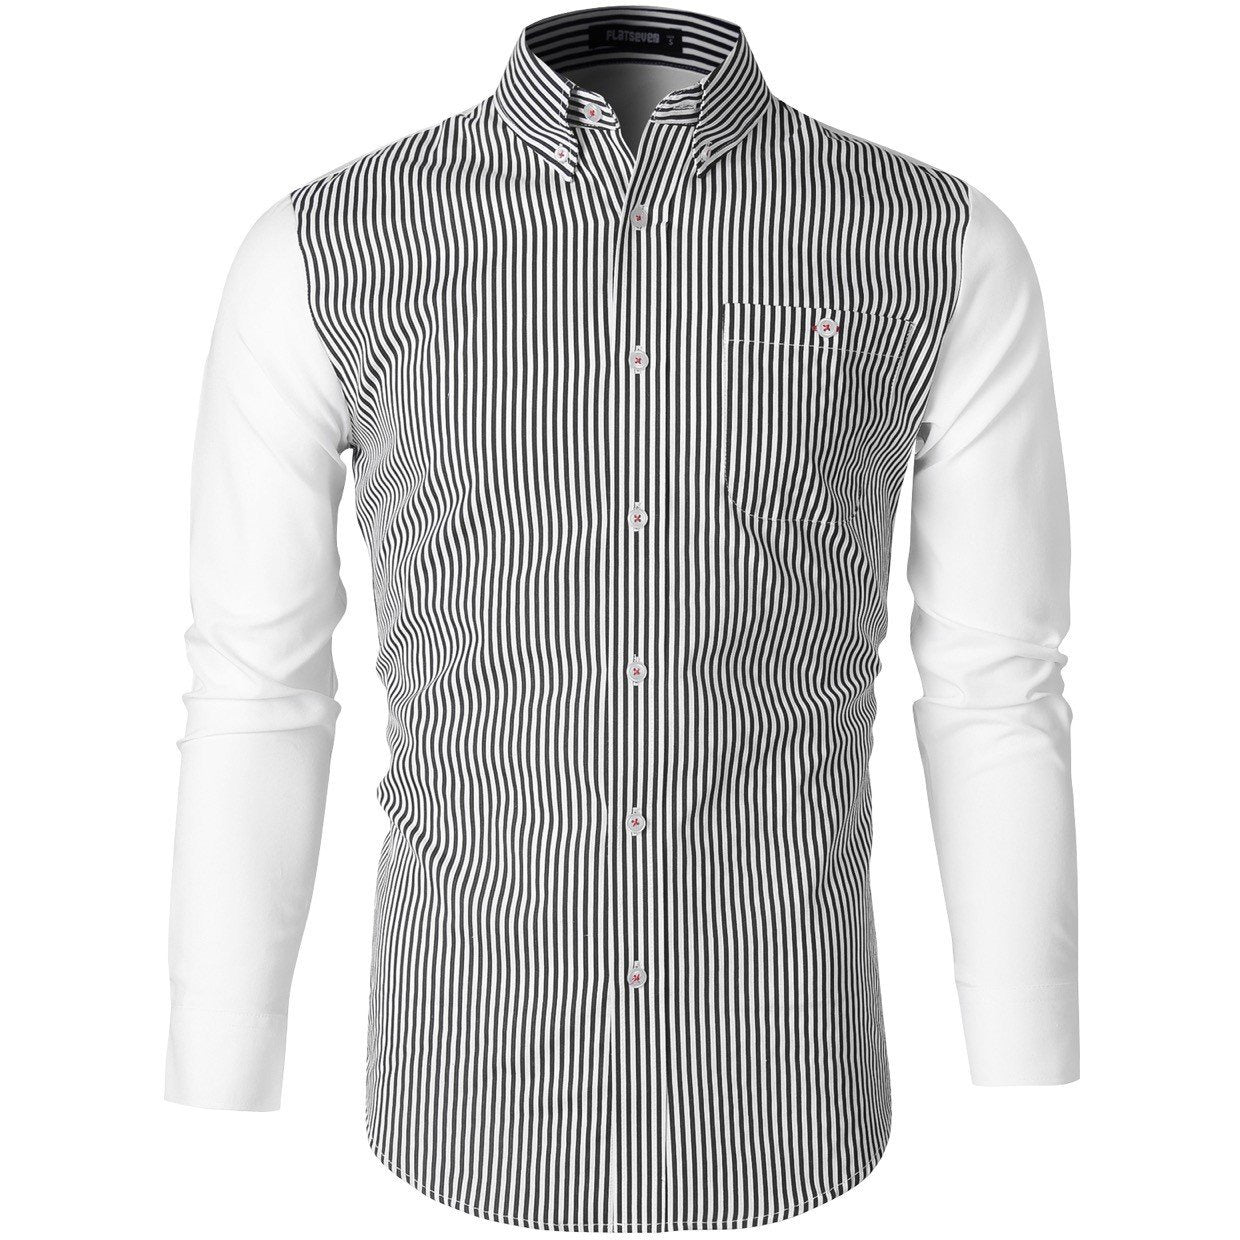 Narrow Striped Button Down Casual Shirt - Stylezme.com